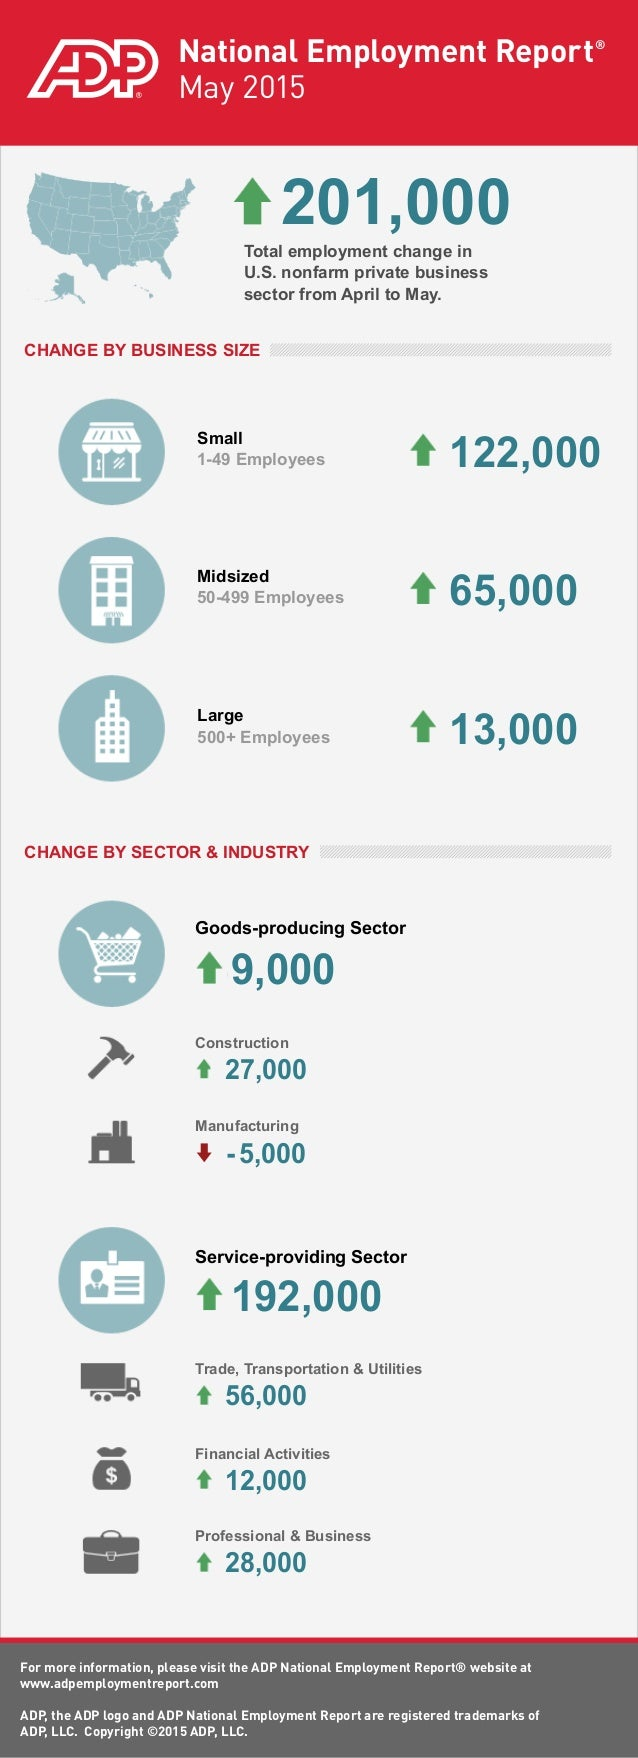 ADP National Employment Report: May 2015